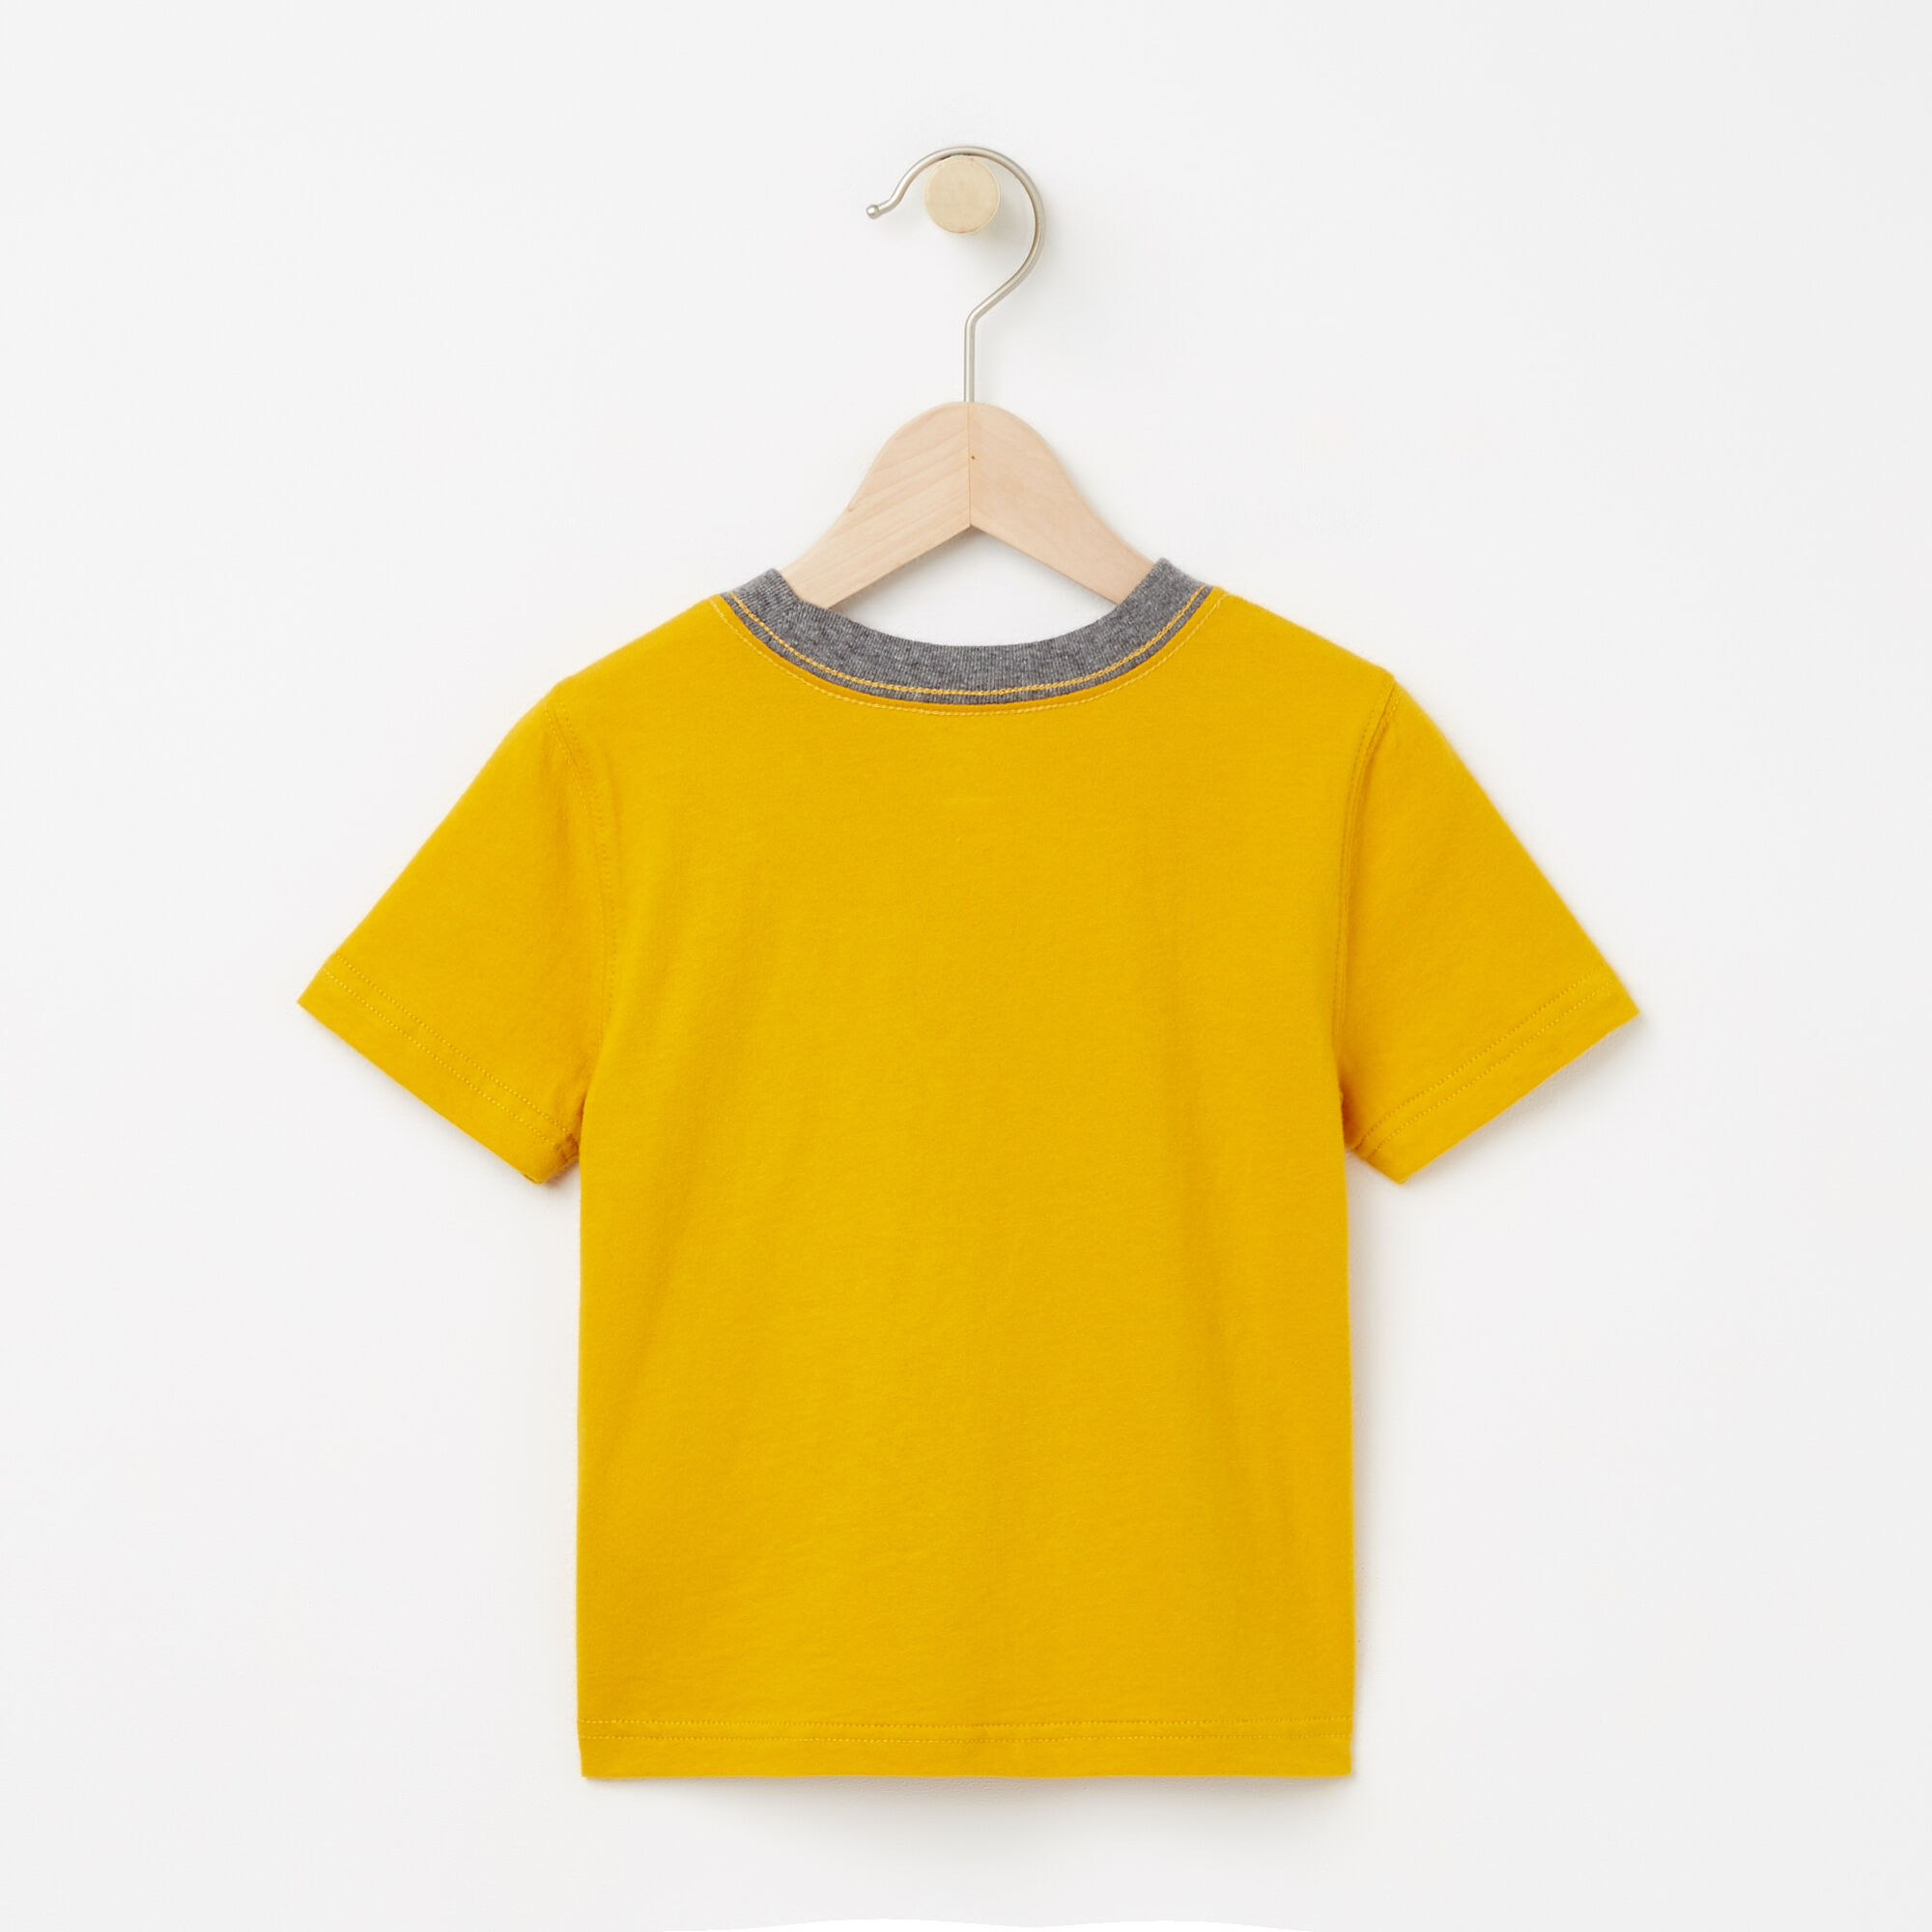 Toddler Maple Syrup Ringer T-shirt